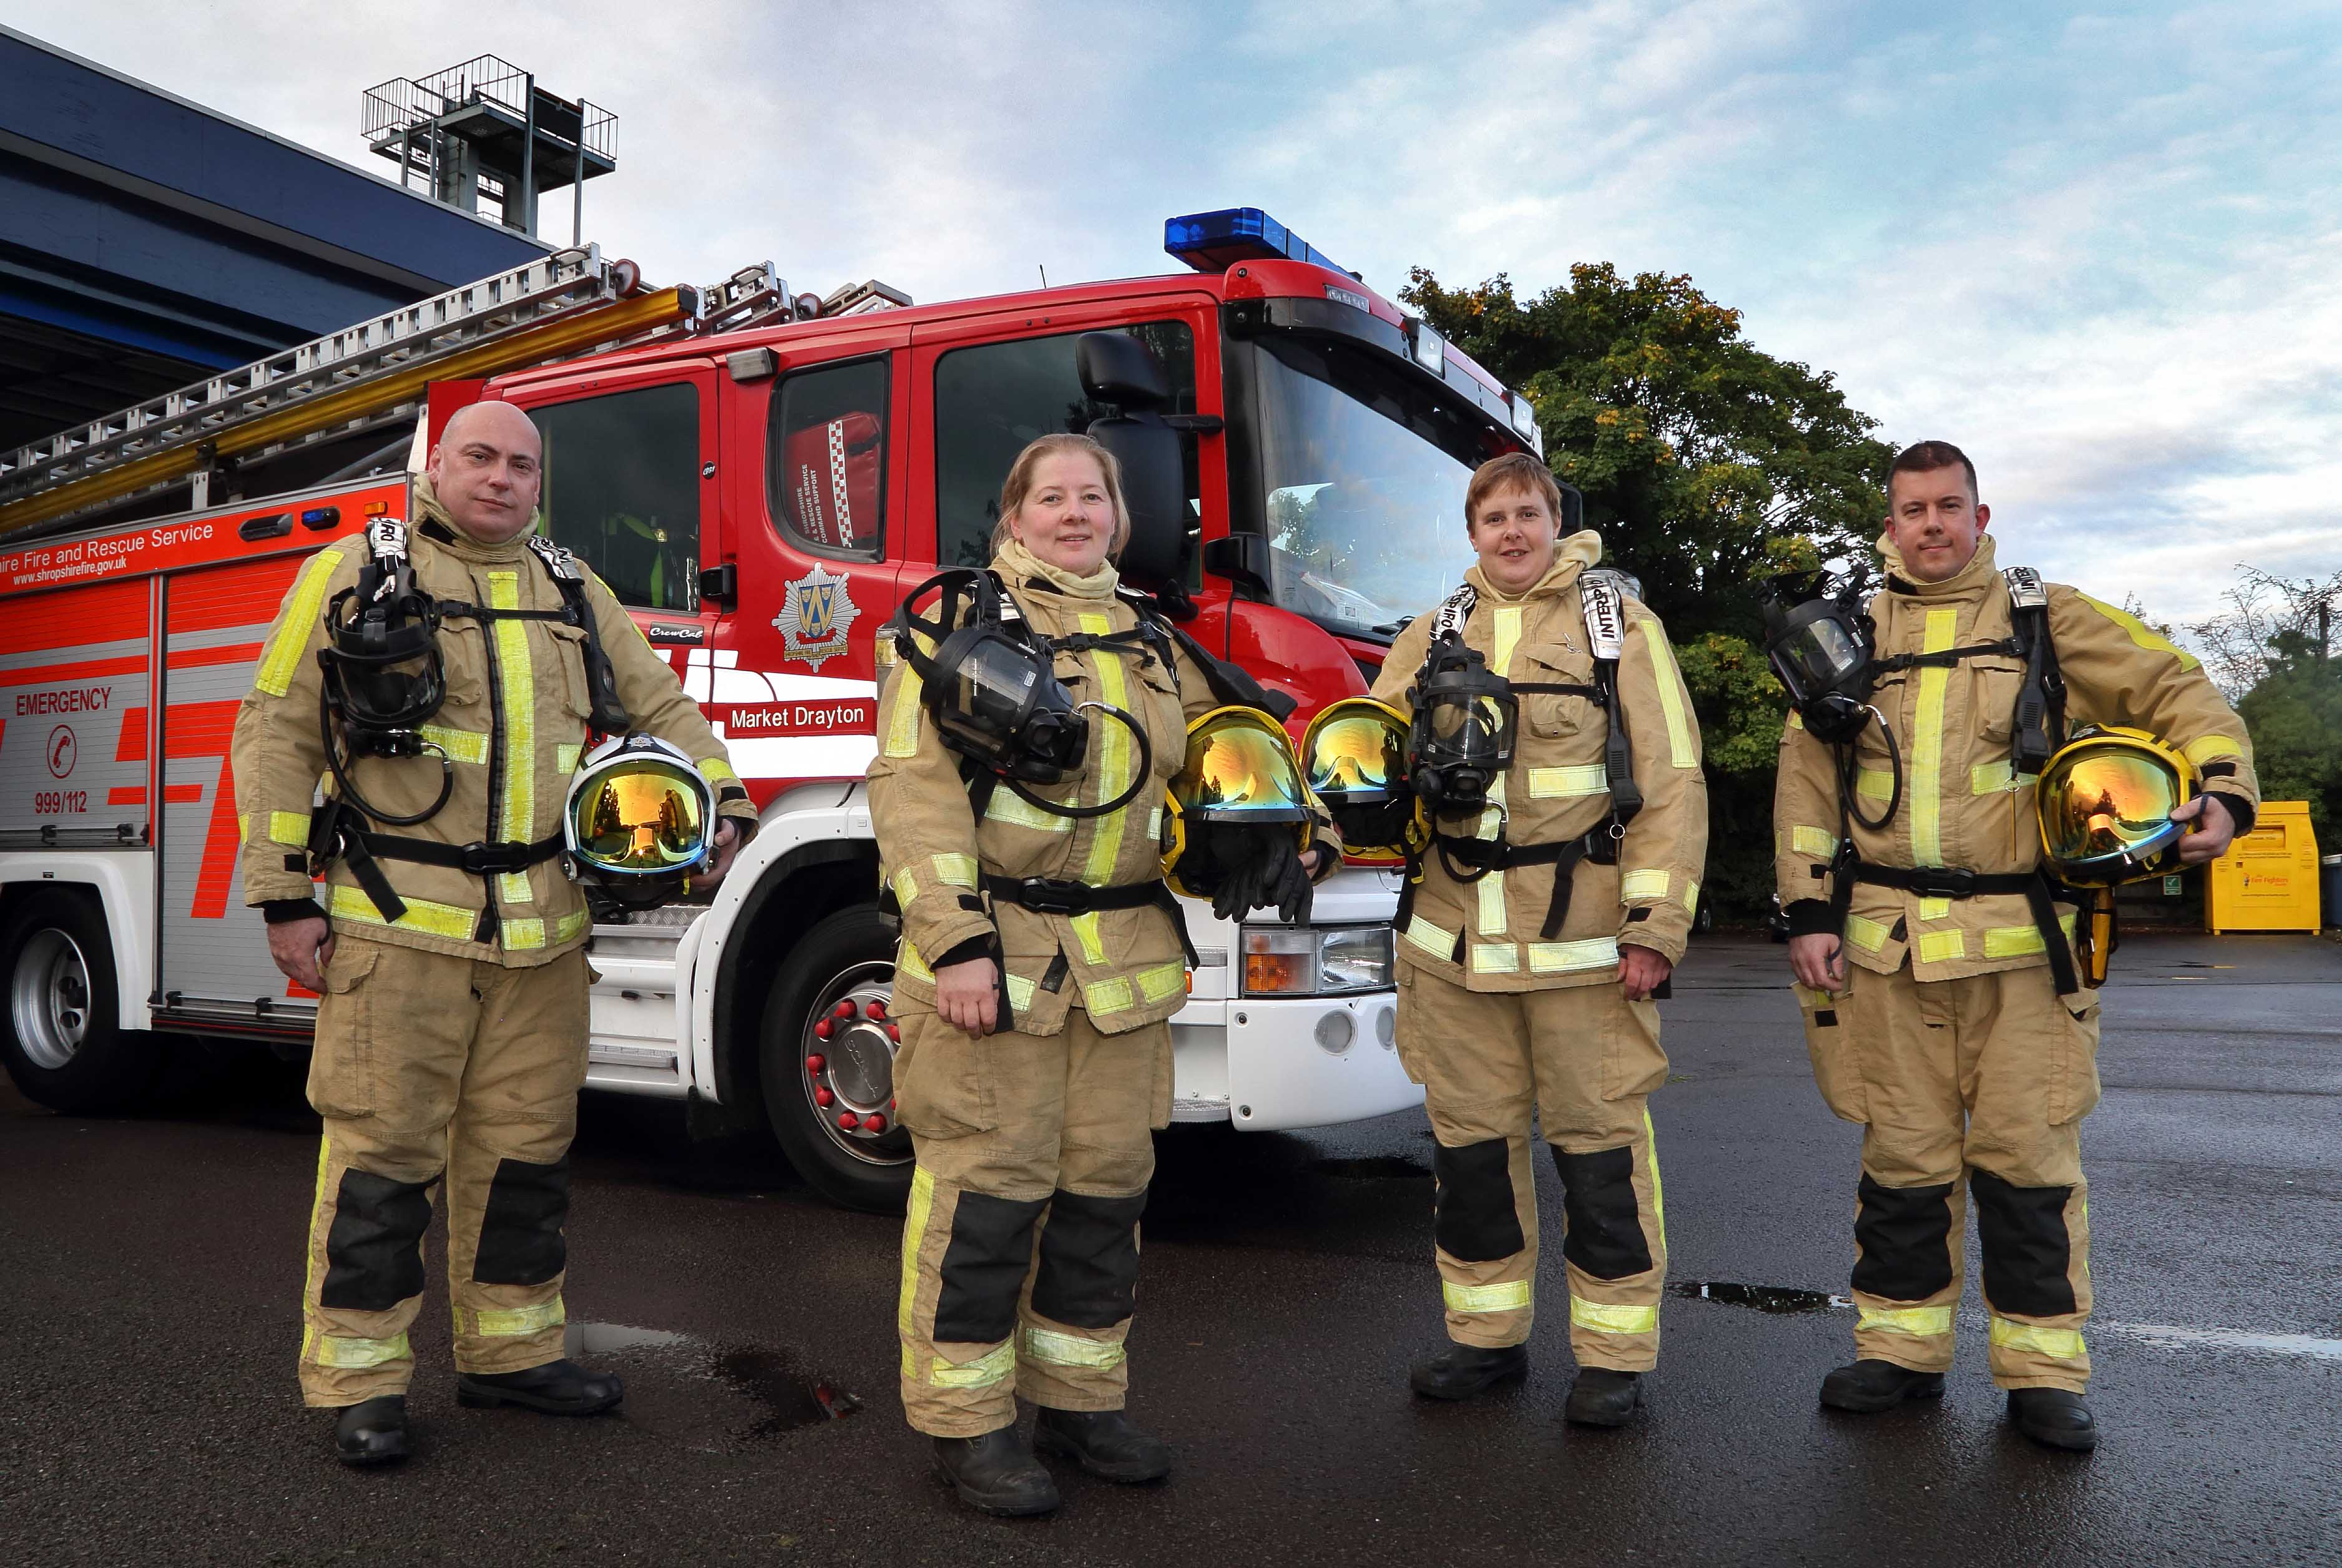 The same line up but without breathing apparatus: Market Drayton Fire Station's Watch Manager Mark Smith with firefighters Sarah Cartwright, Sally Eynon, who is working towards becoming a crew manager, and firefighter Leon Turner.